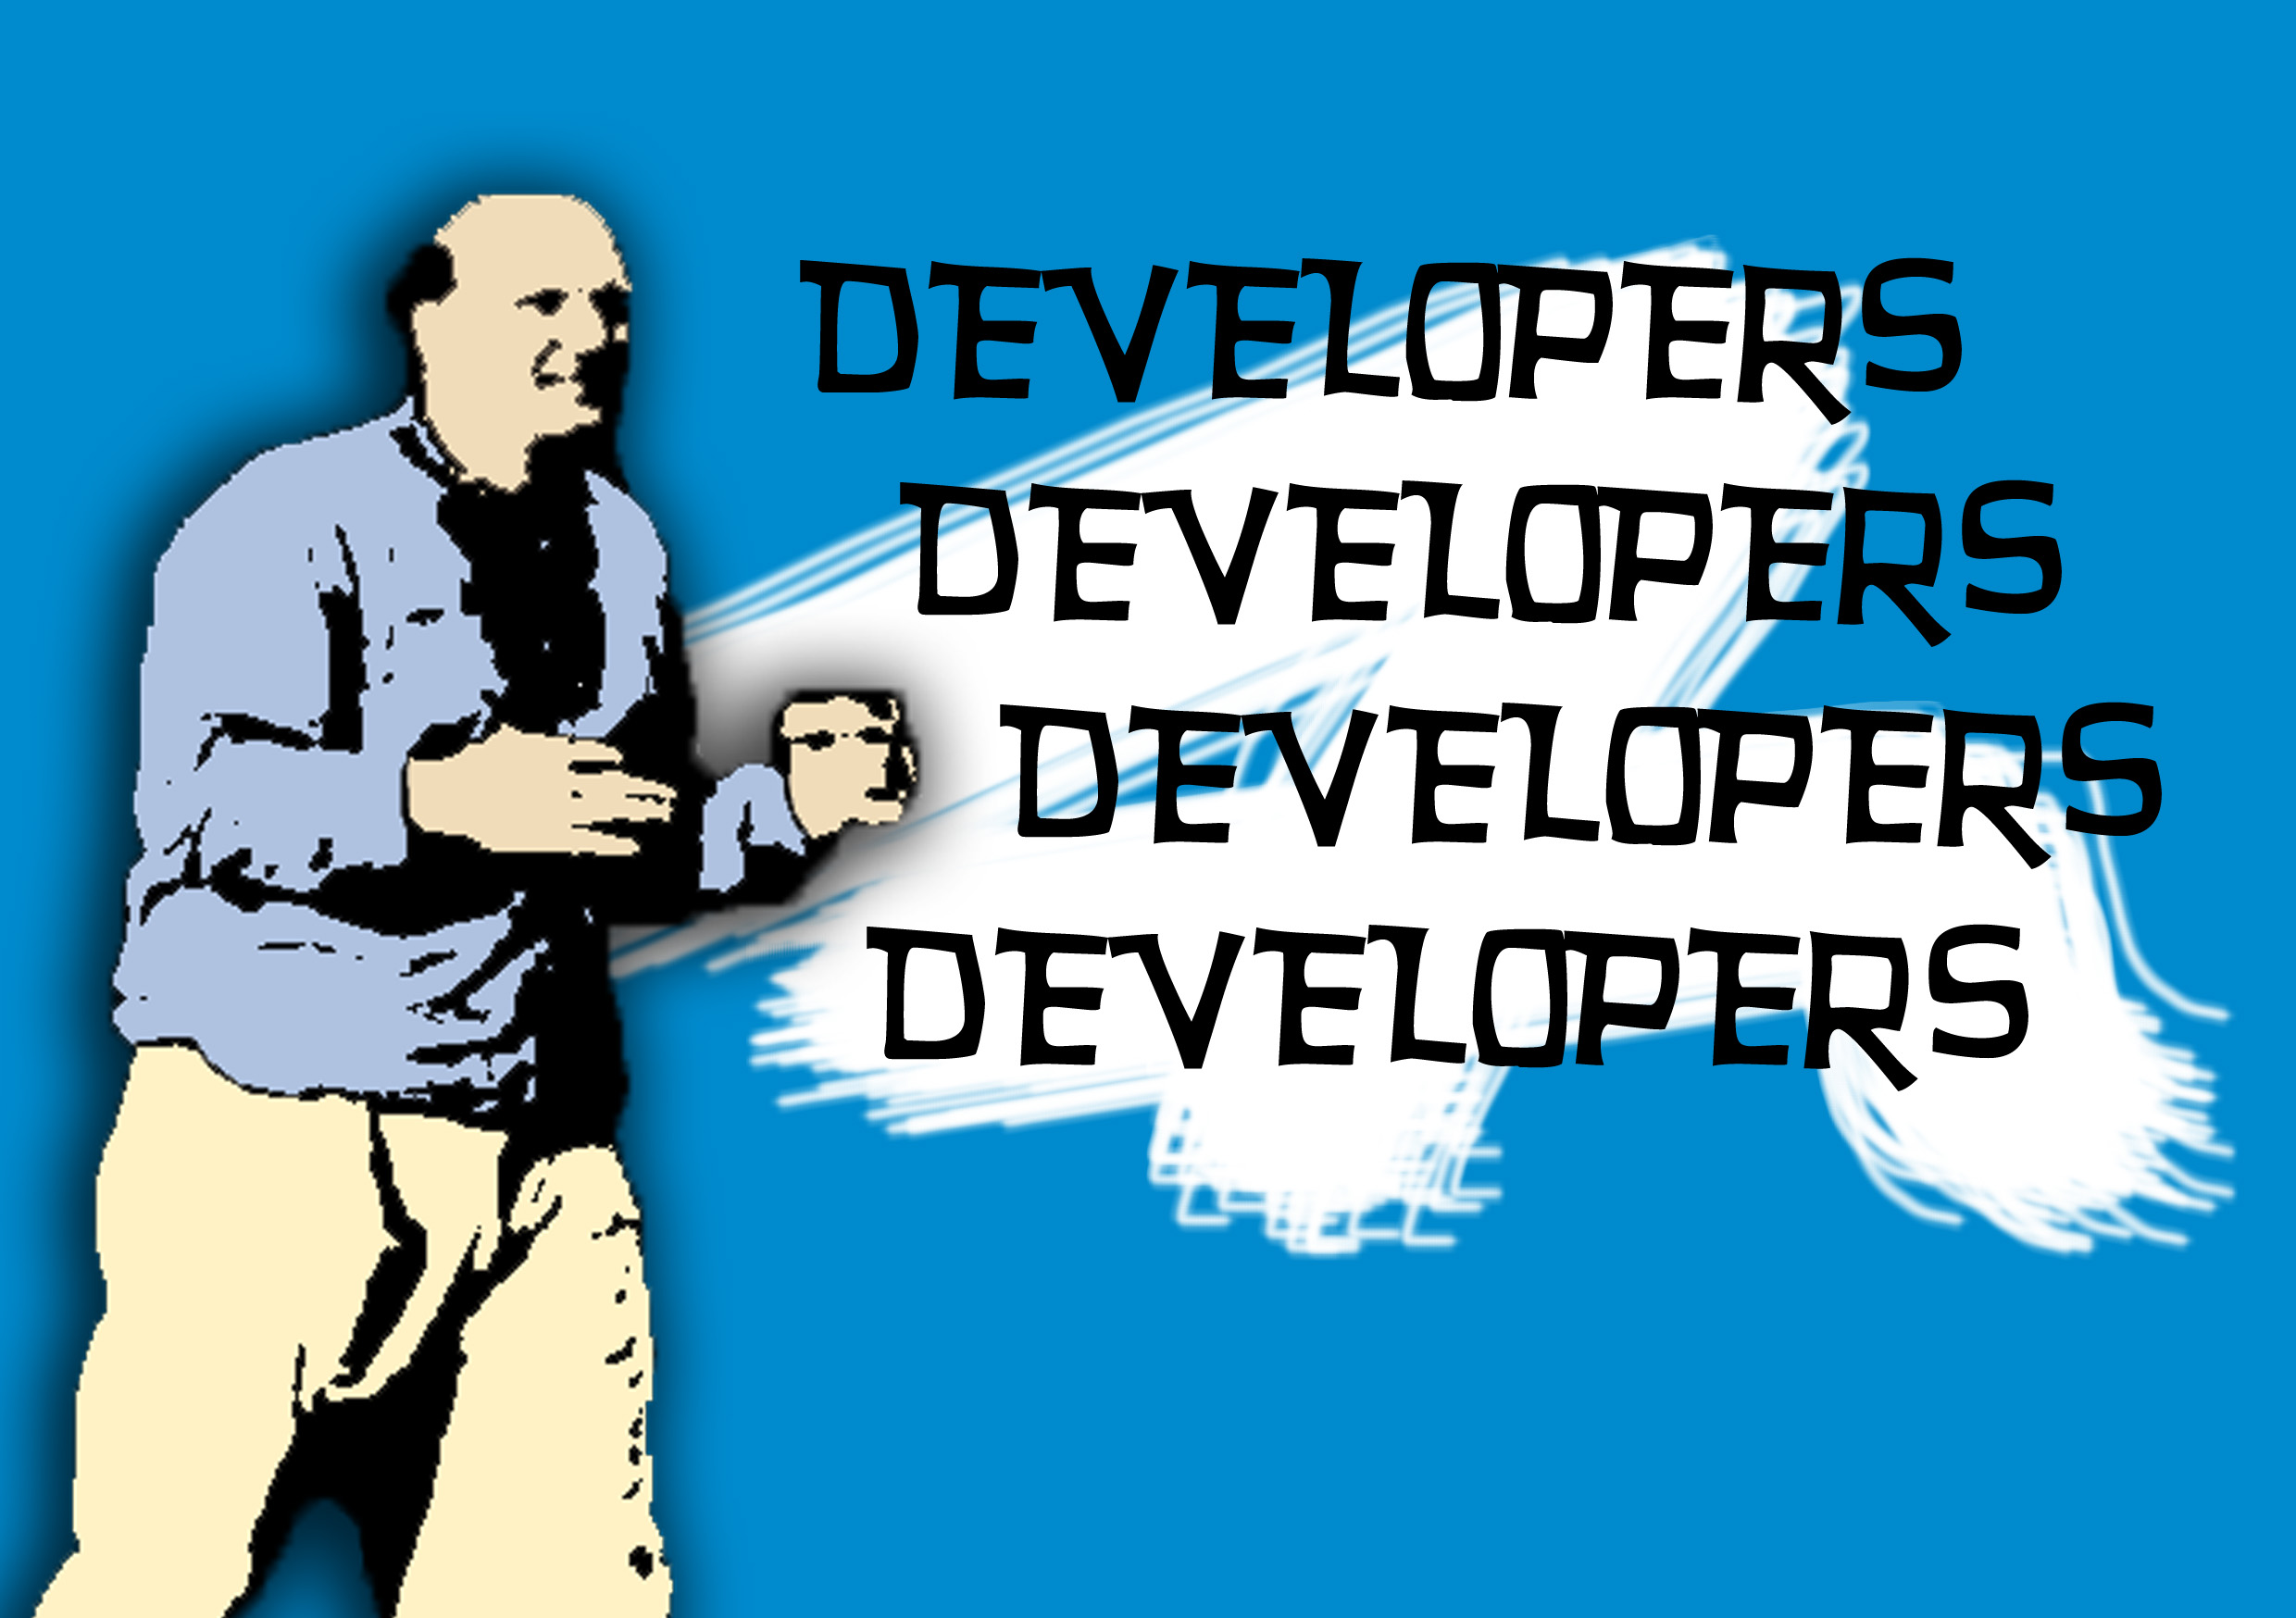 developers, developers, developers